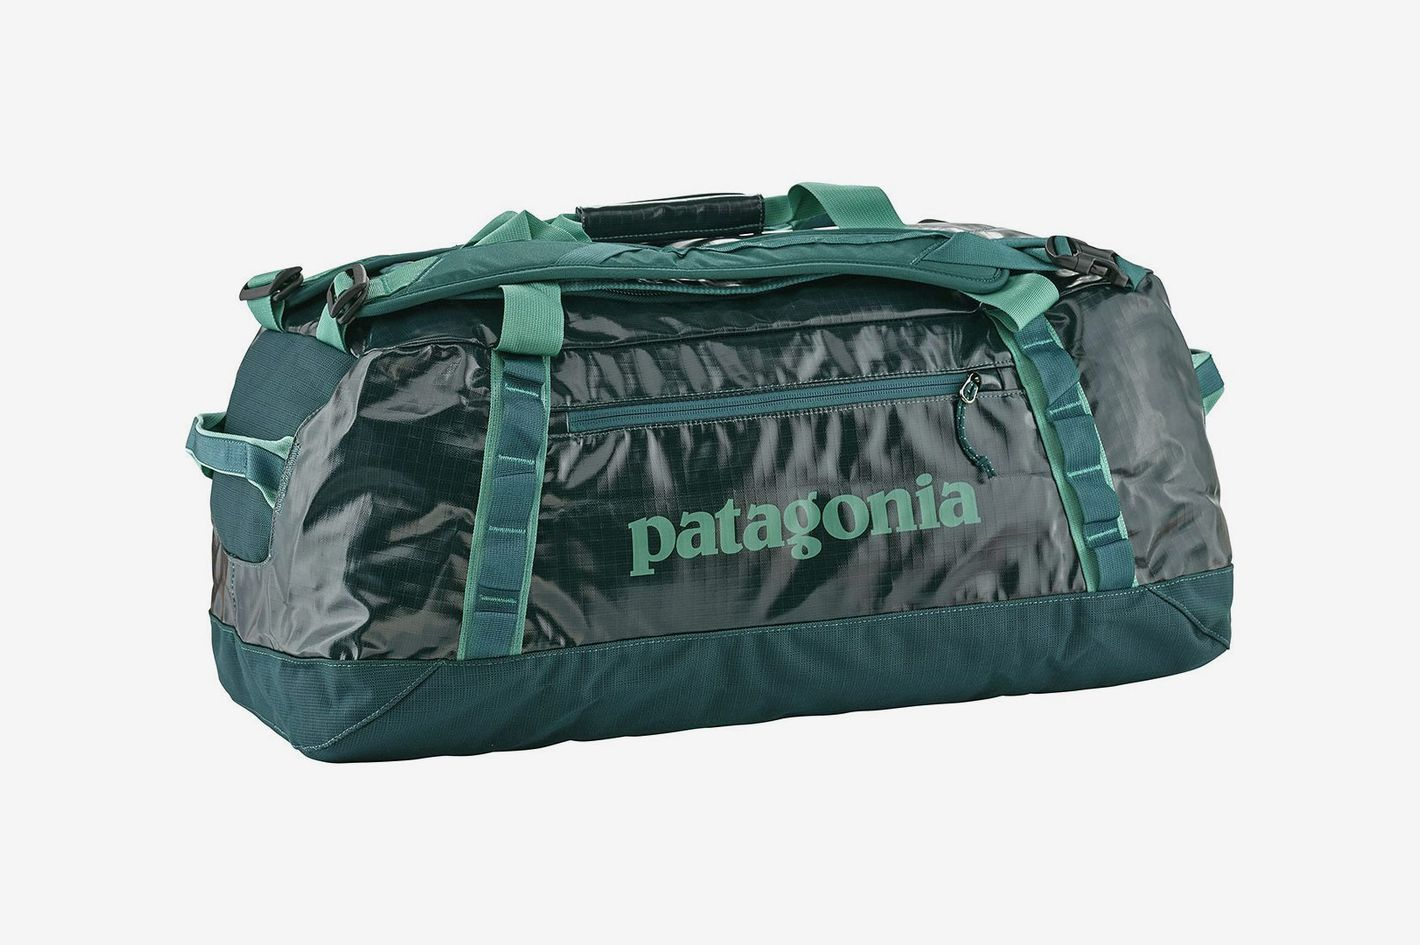 298d8f66bb The 13 Best Duffel Bags for Travel 2018